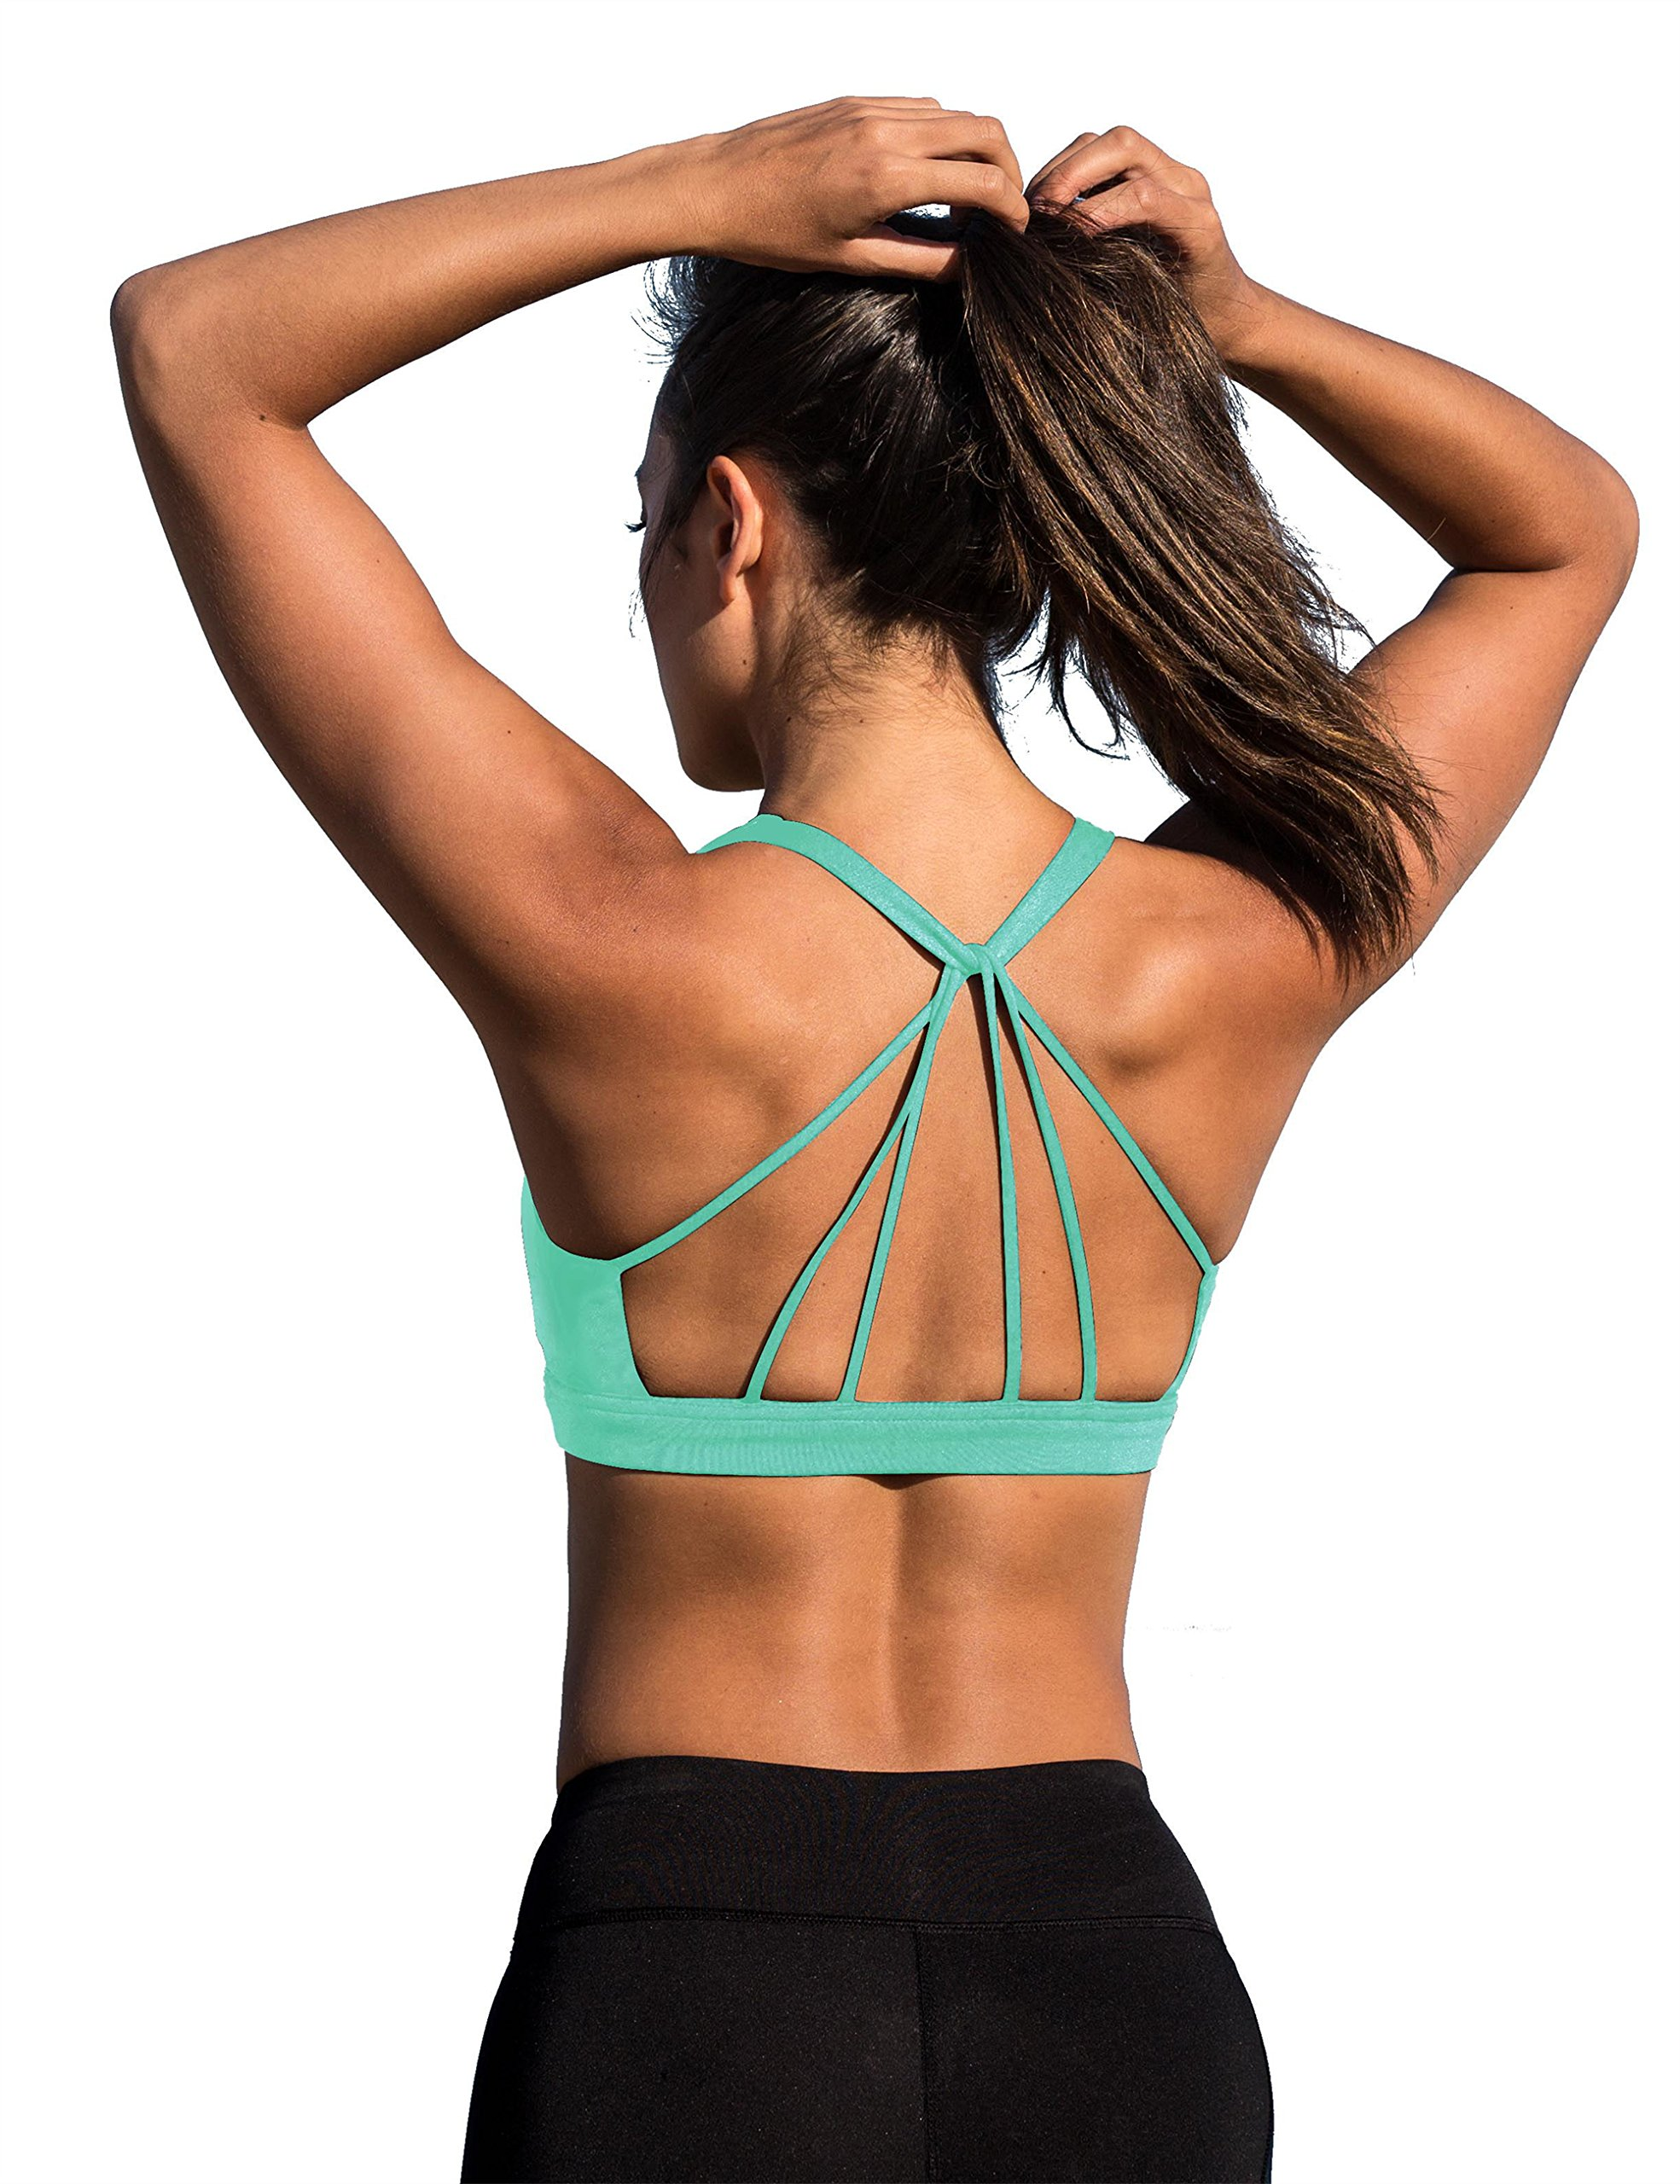 169e379f15 icyzone Padded Strappy Sports Bra Yoga Tops Activewear Workout Clothes  Women product image